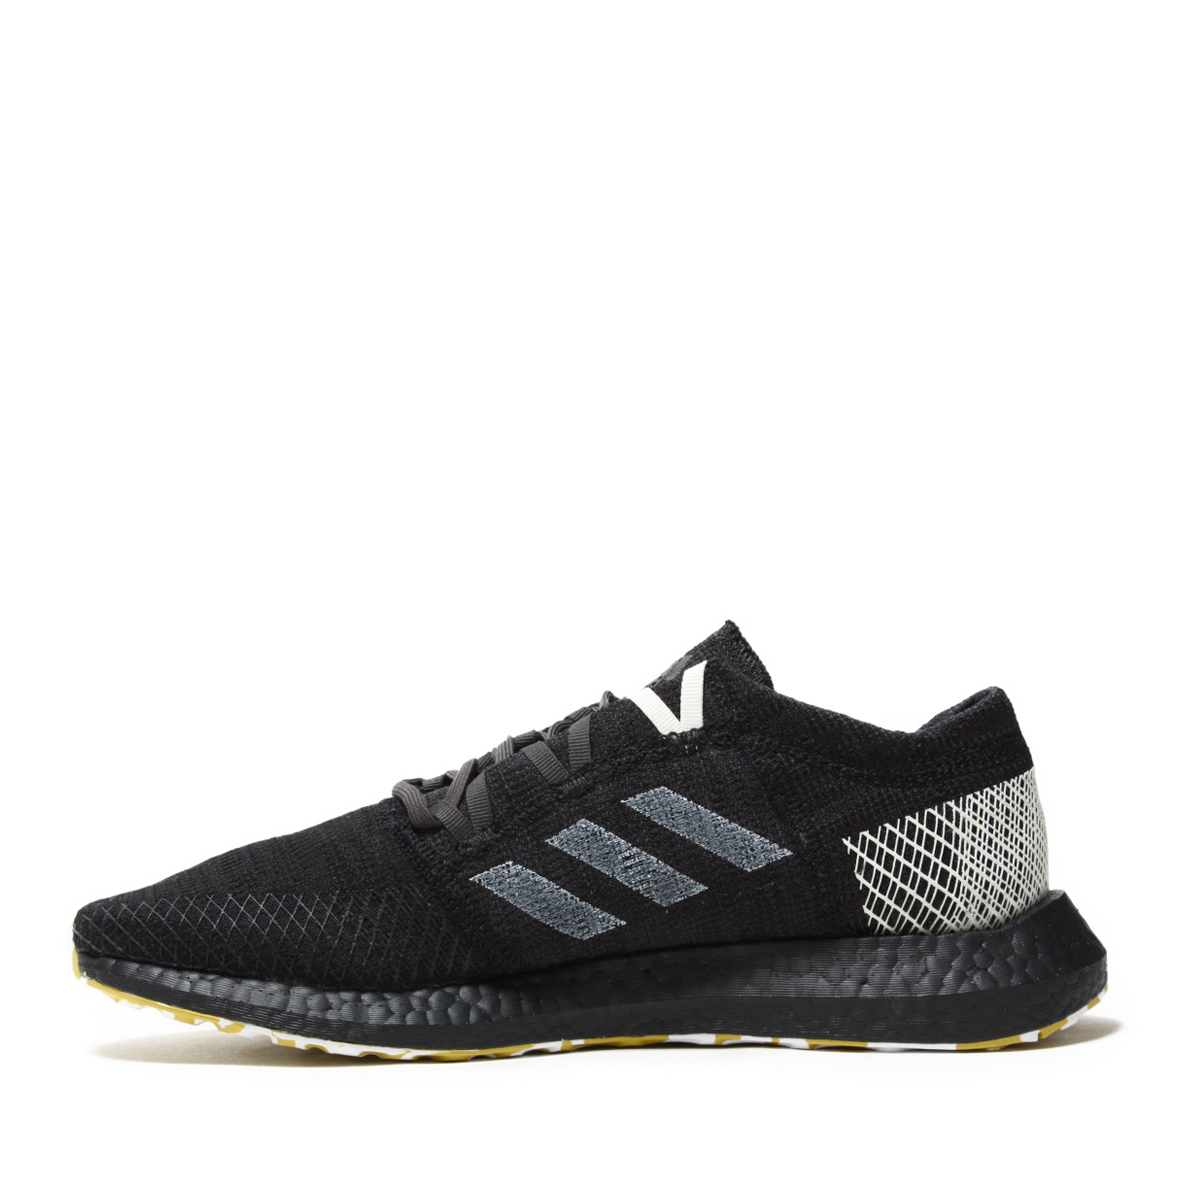 9f138284da0 adidas PureBOOST GO LTD (Adidas pure boost GO LTD) CORE BLACK CLOUD WHITE  CARBON 18FA-I